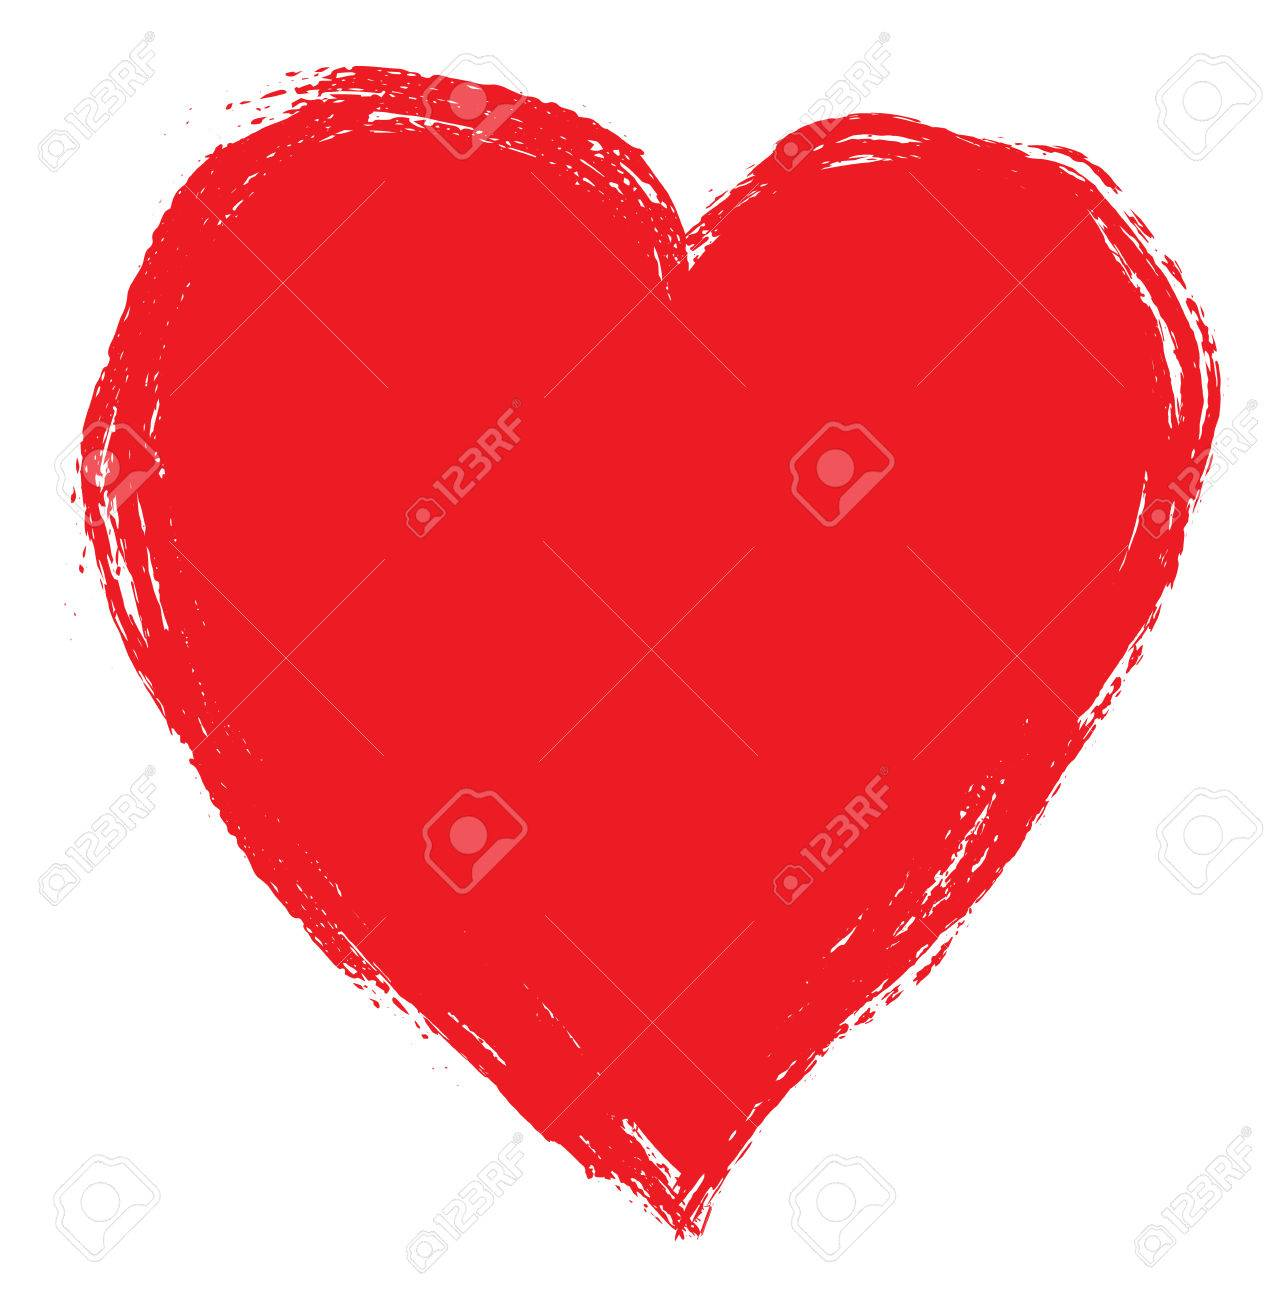 Hand drawing red heart isolated on white. Clip art - 50442223